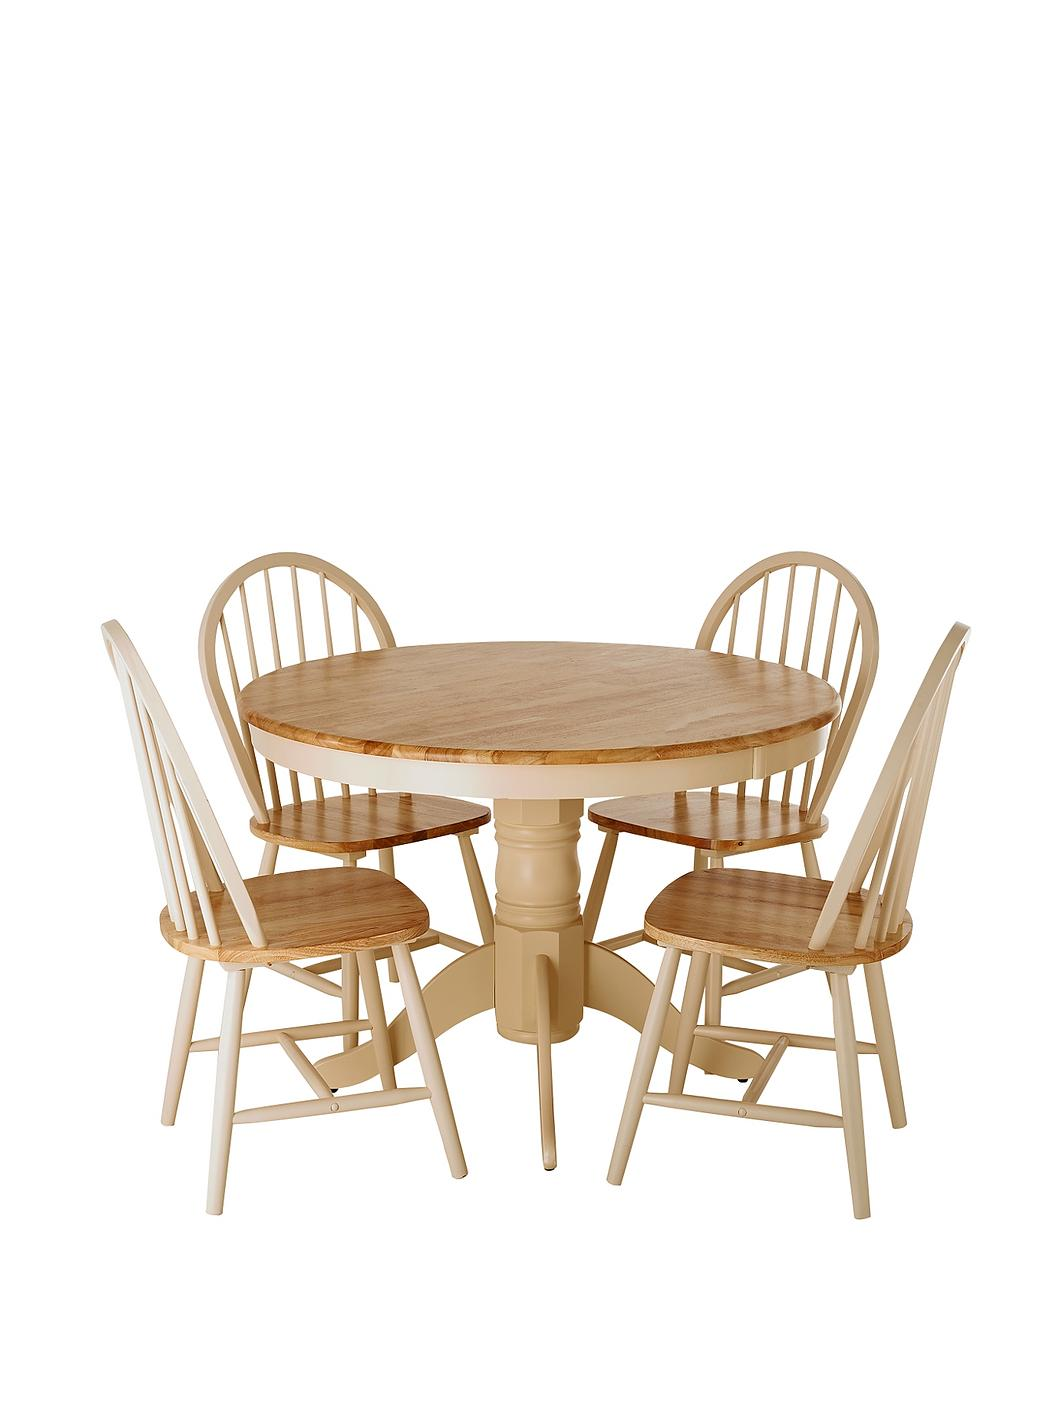 Kildare Round Dining Table And 4 Chairs Set